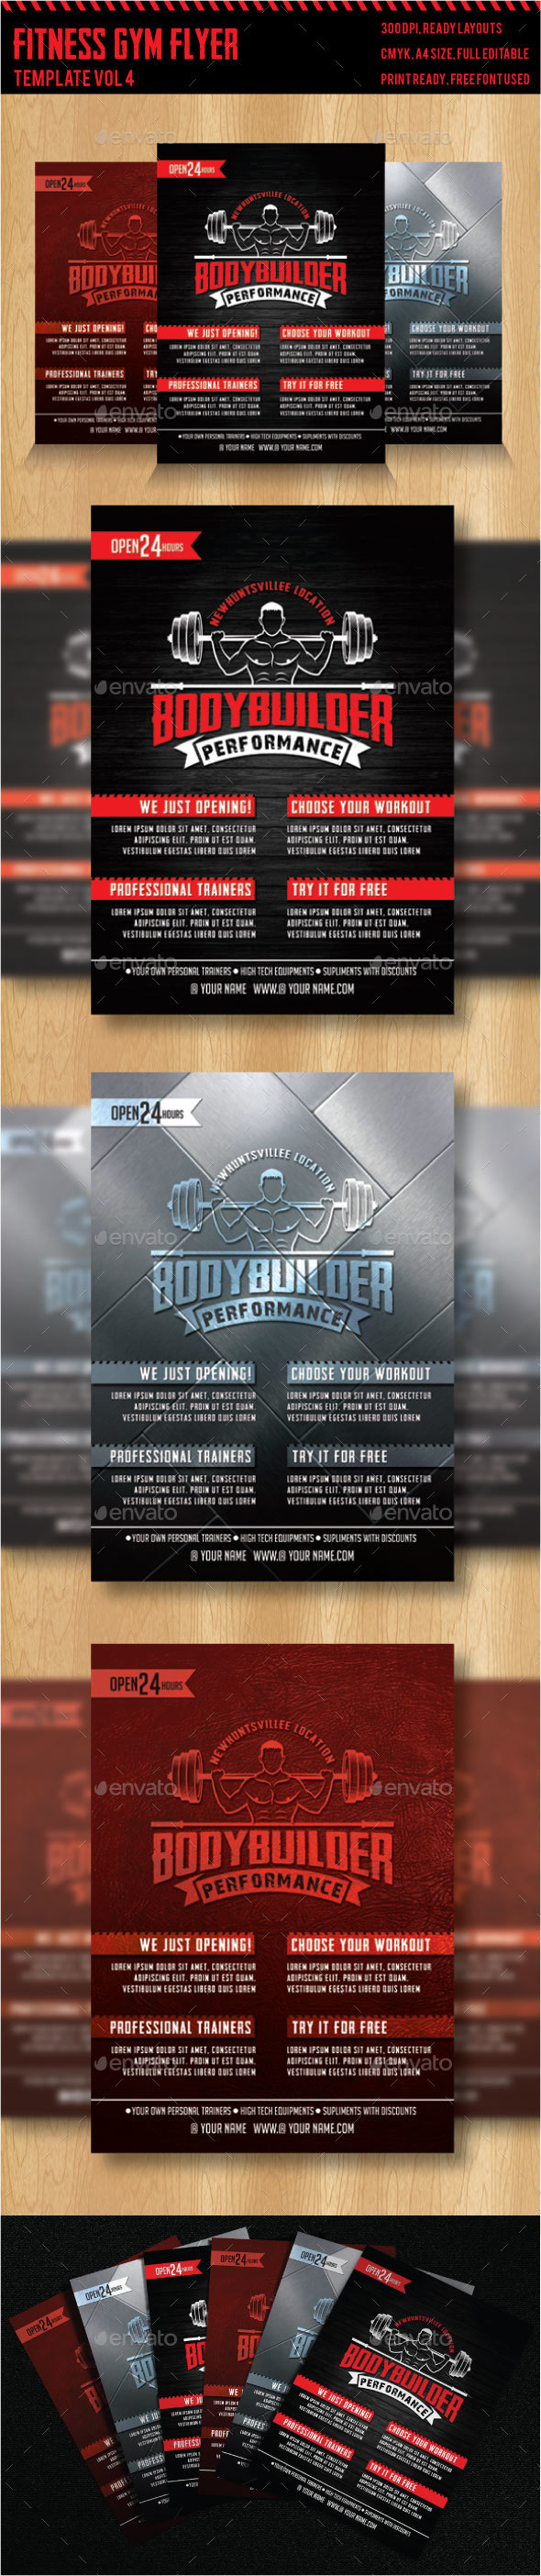 Fitness - Gym Flyer Templates 4